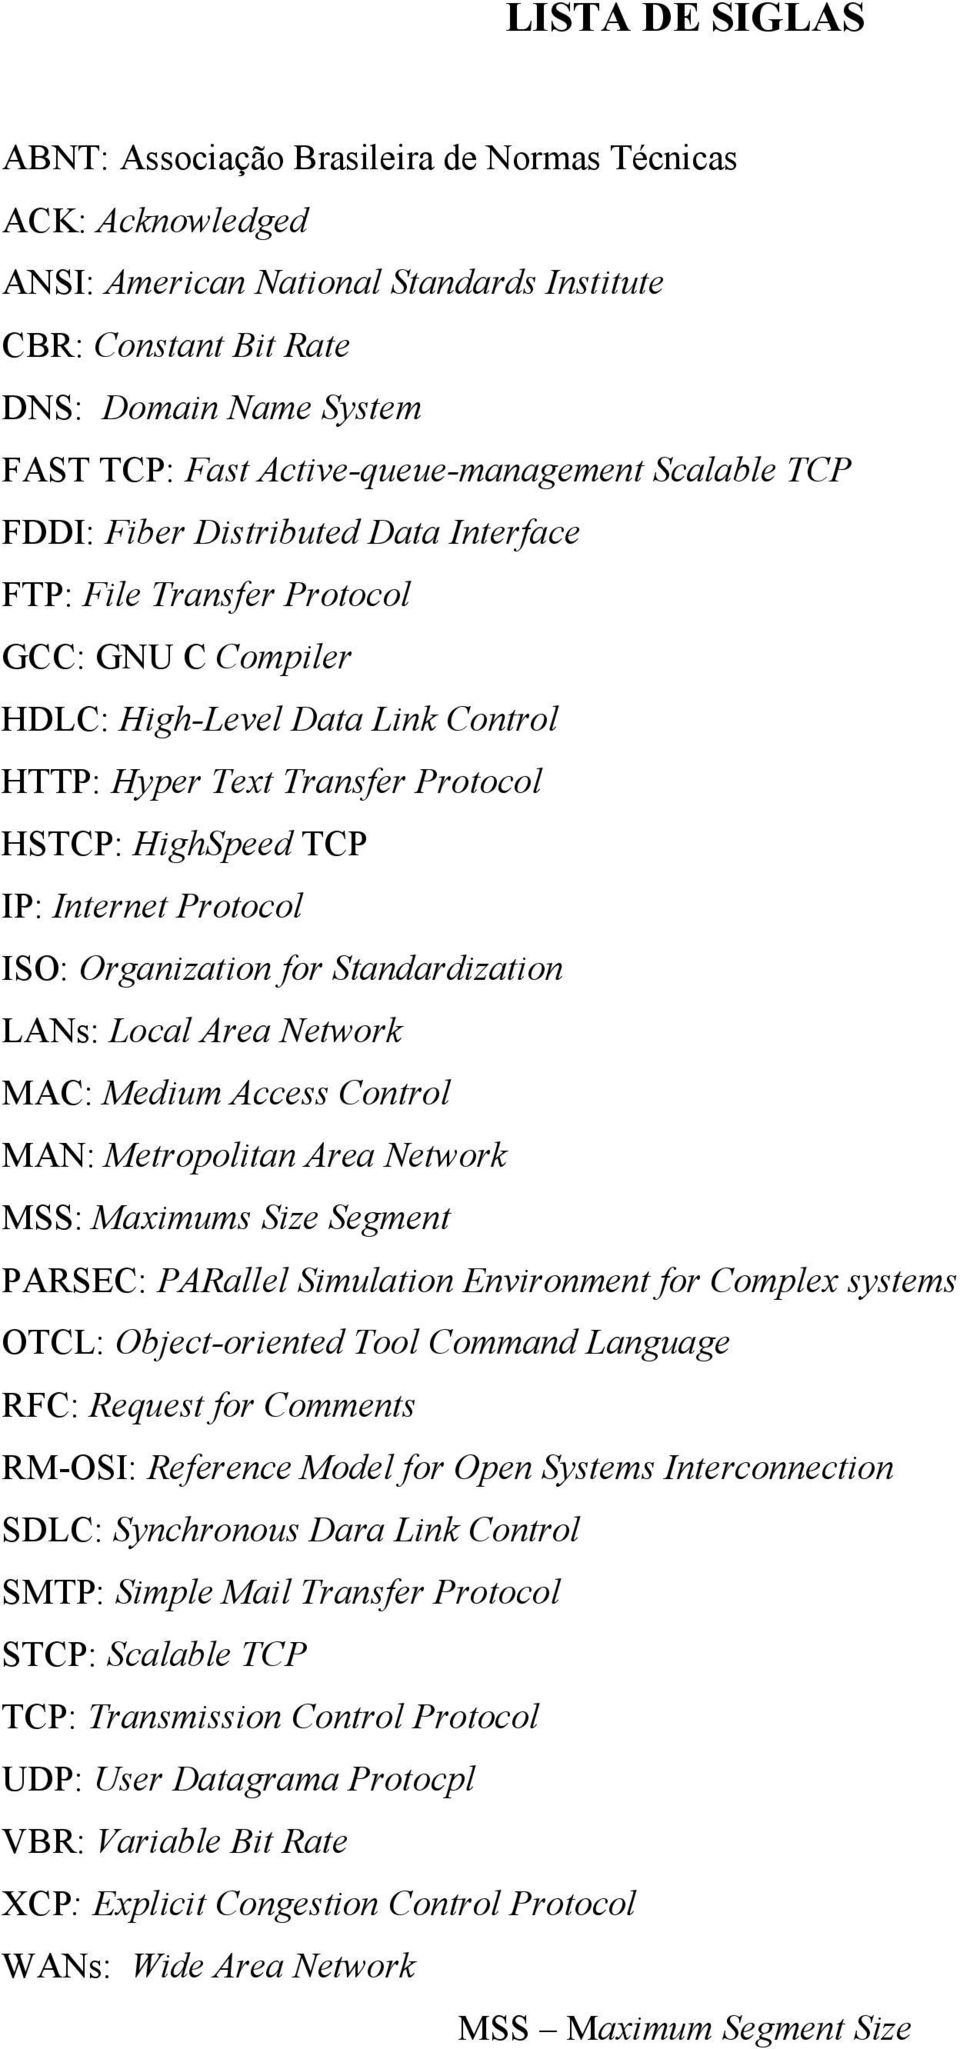 HSTCP: HighSpeed TCP IP: Internet Protocol ISO: Organization for Standardization LANs: Local Area Network MAC: Medium Access Control MAN: Metropolitan Area Network MSS: Maximums Size Segment PARSEC: